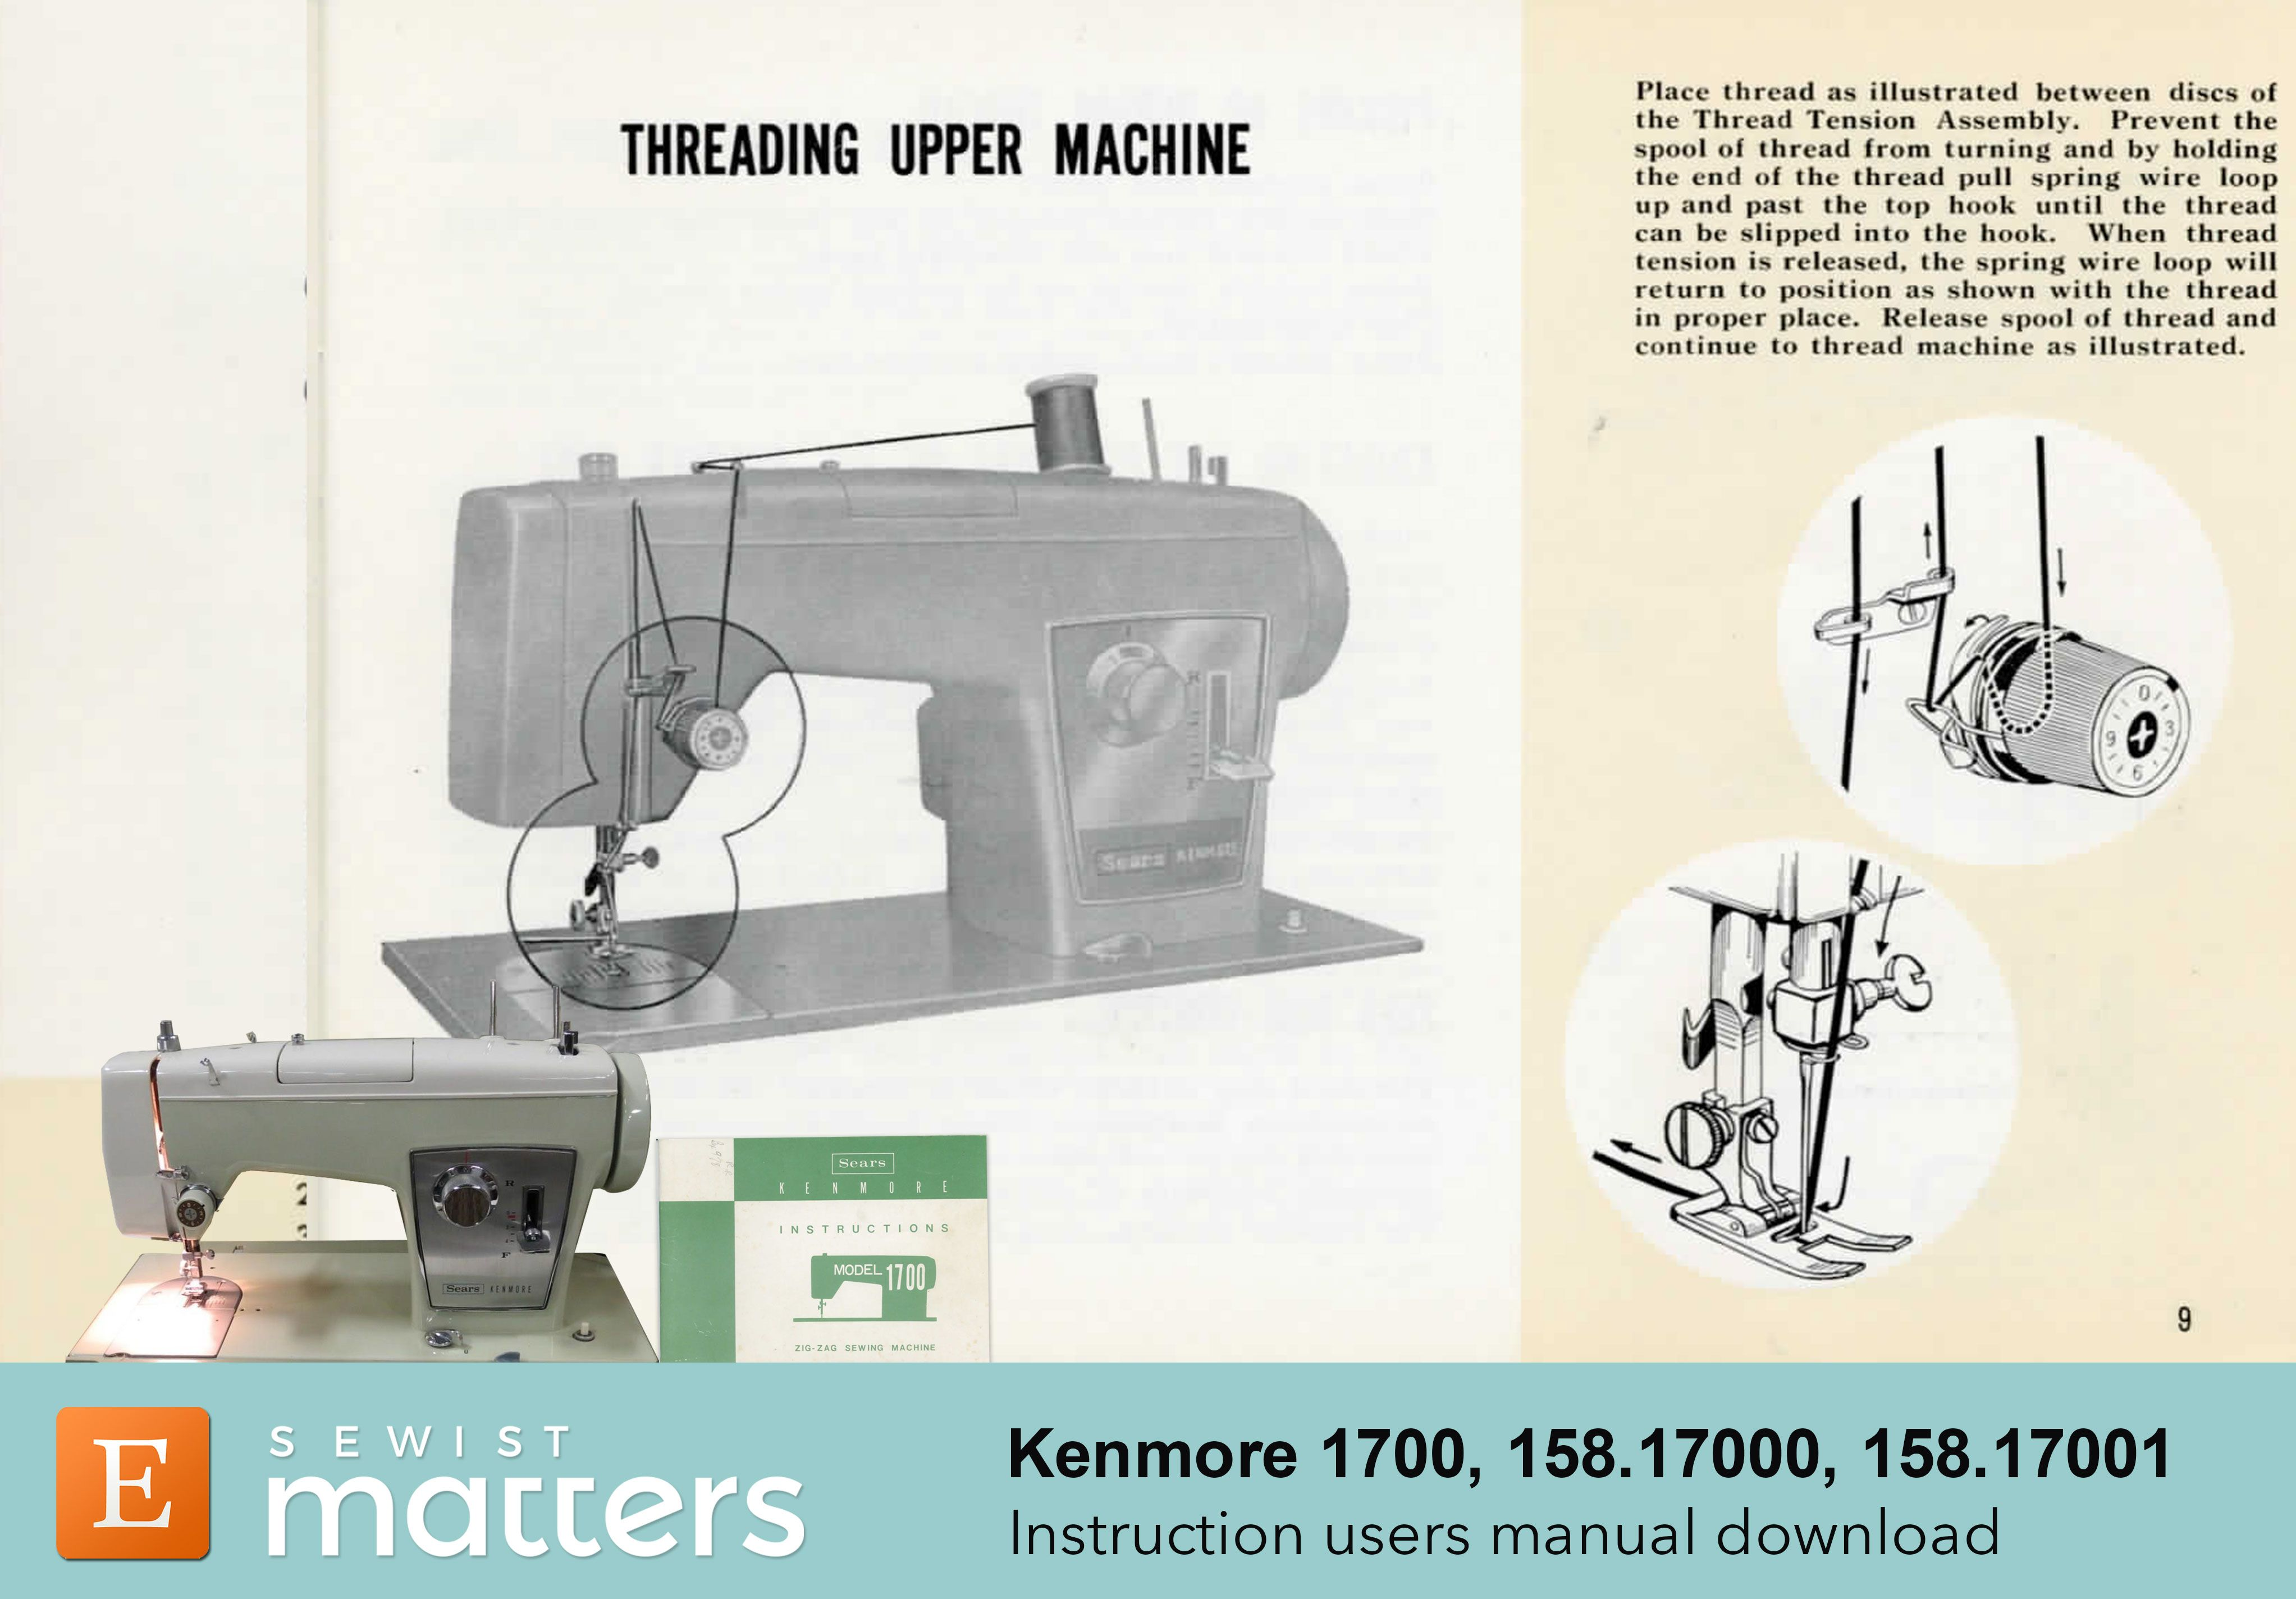 Kenmore 1700 158 17000 158 001 Zig Zag Sewing Machine Etsy Sewing Machine Instruction Manuals Sewing Machine Instructions Sears Sewing Machine